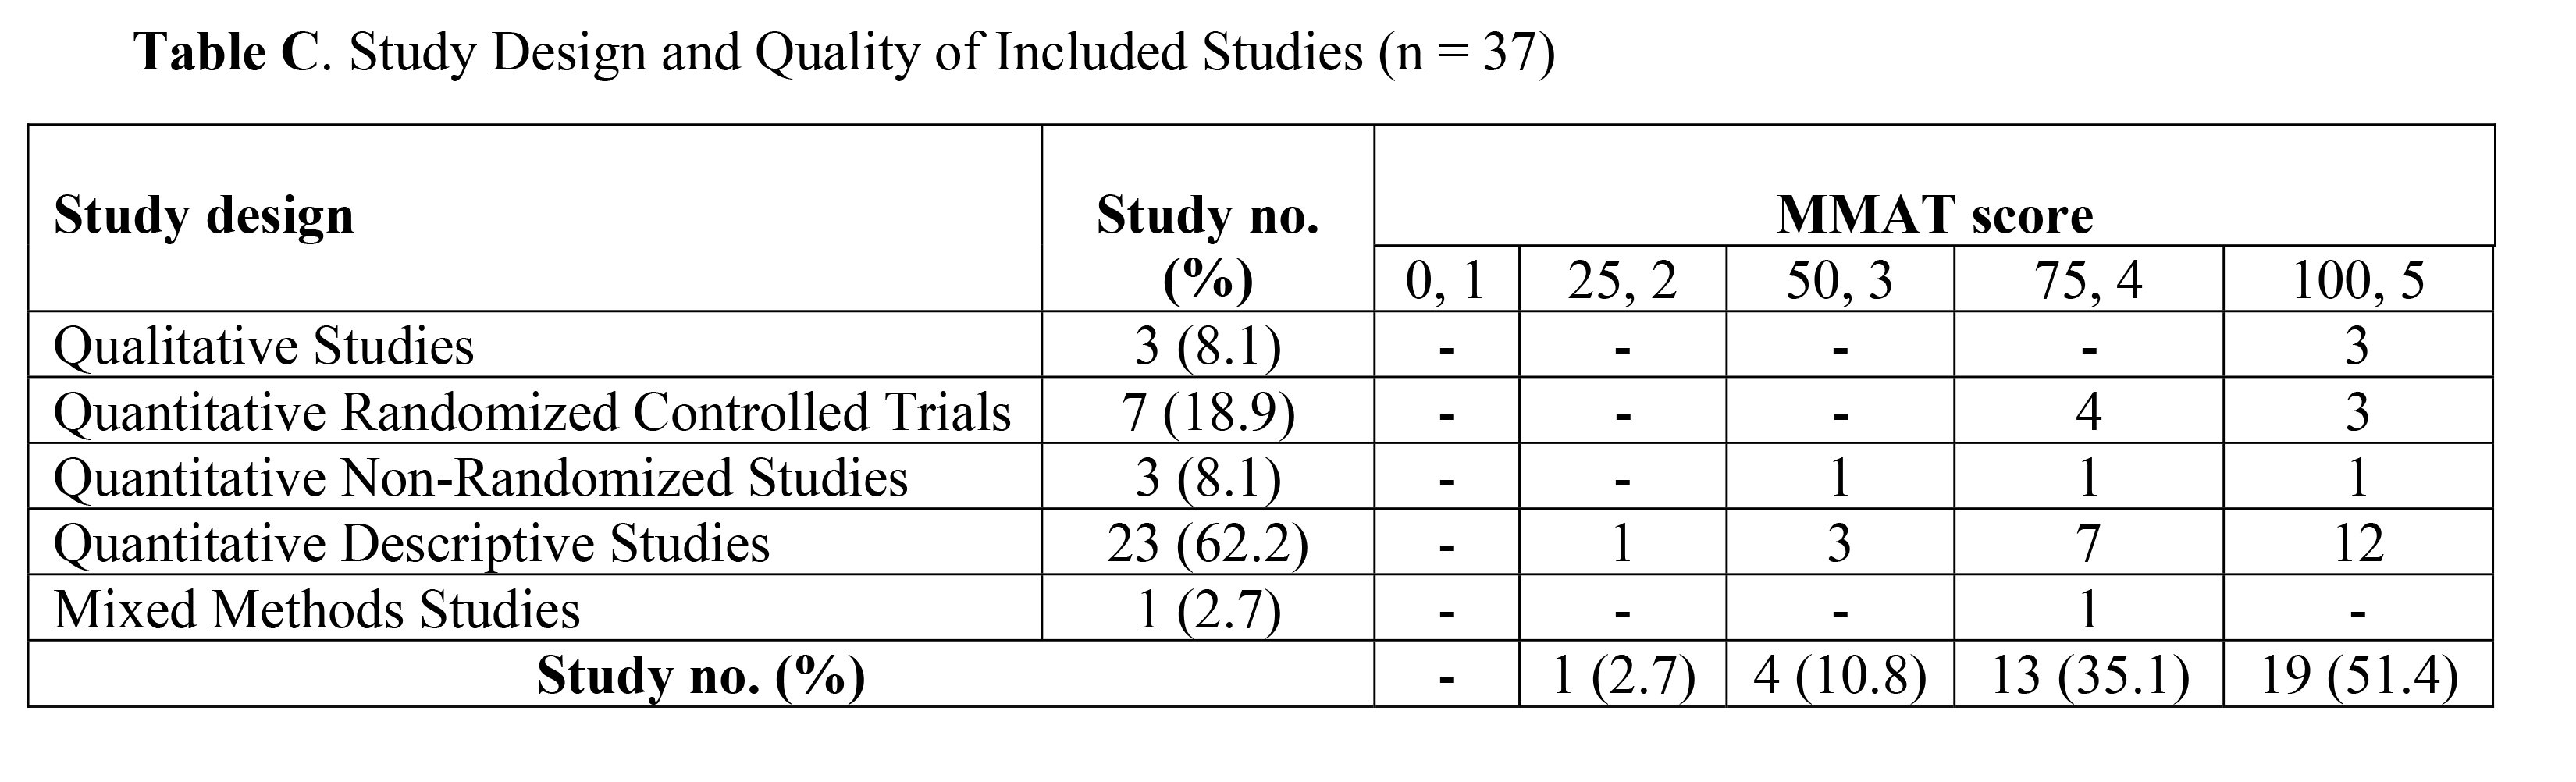 Study Design and Quality of Included Studies (n = 37)